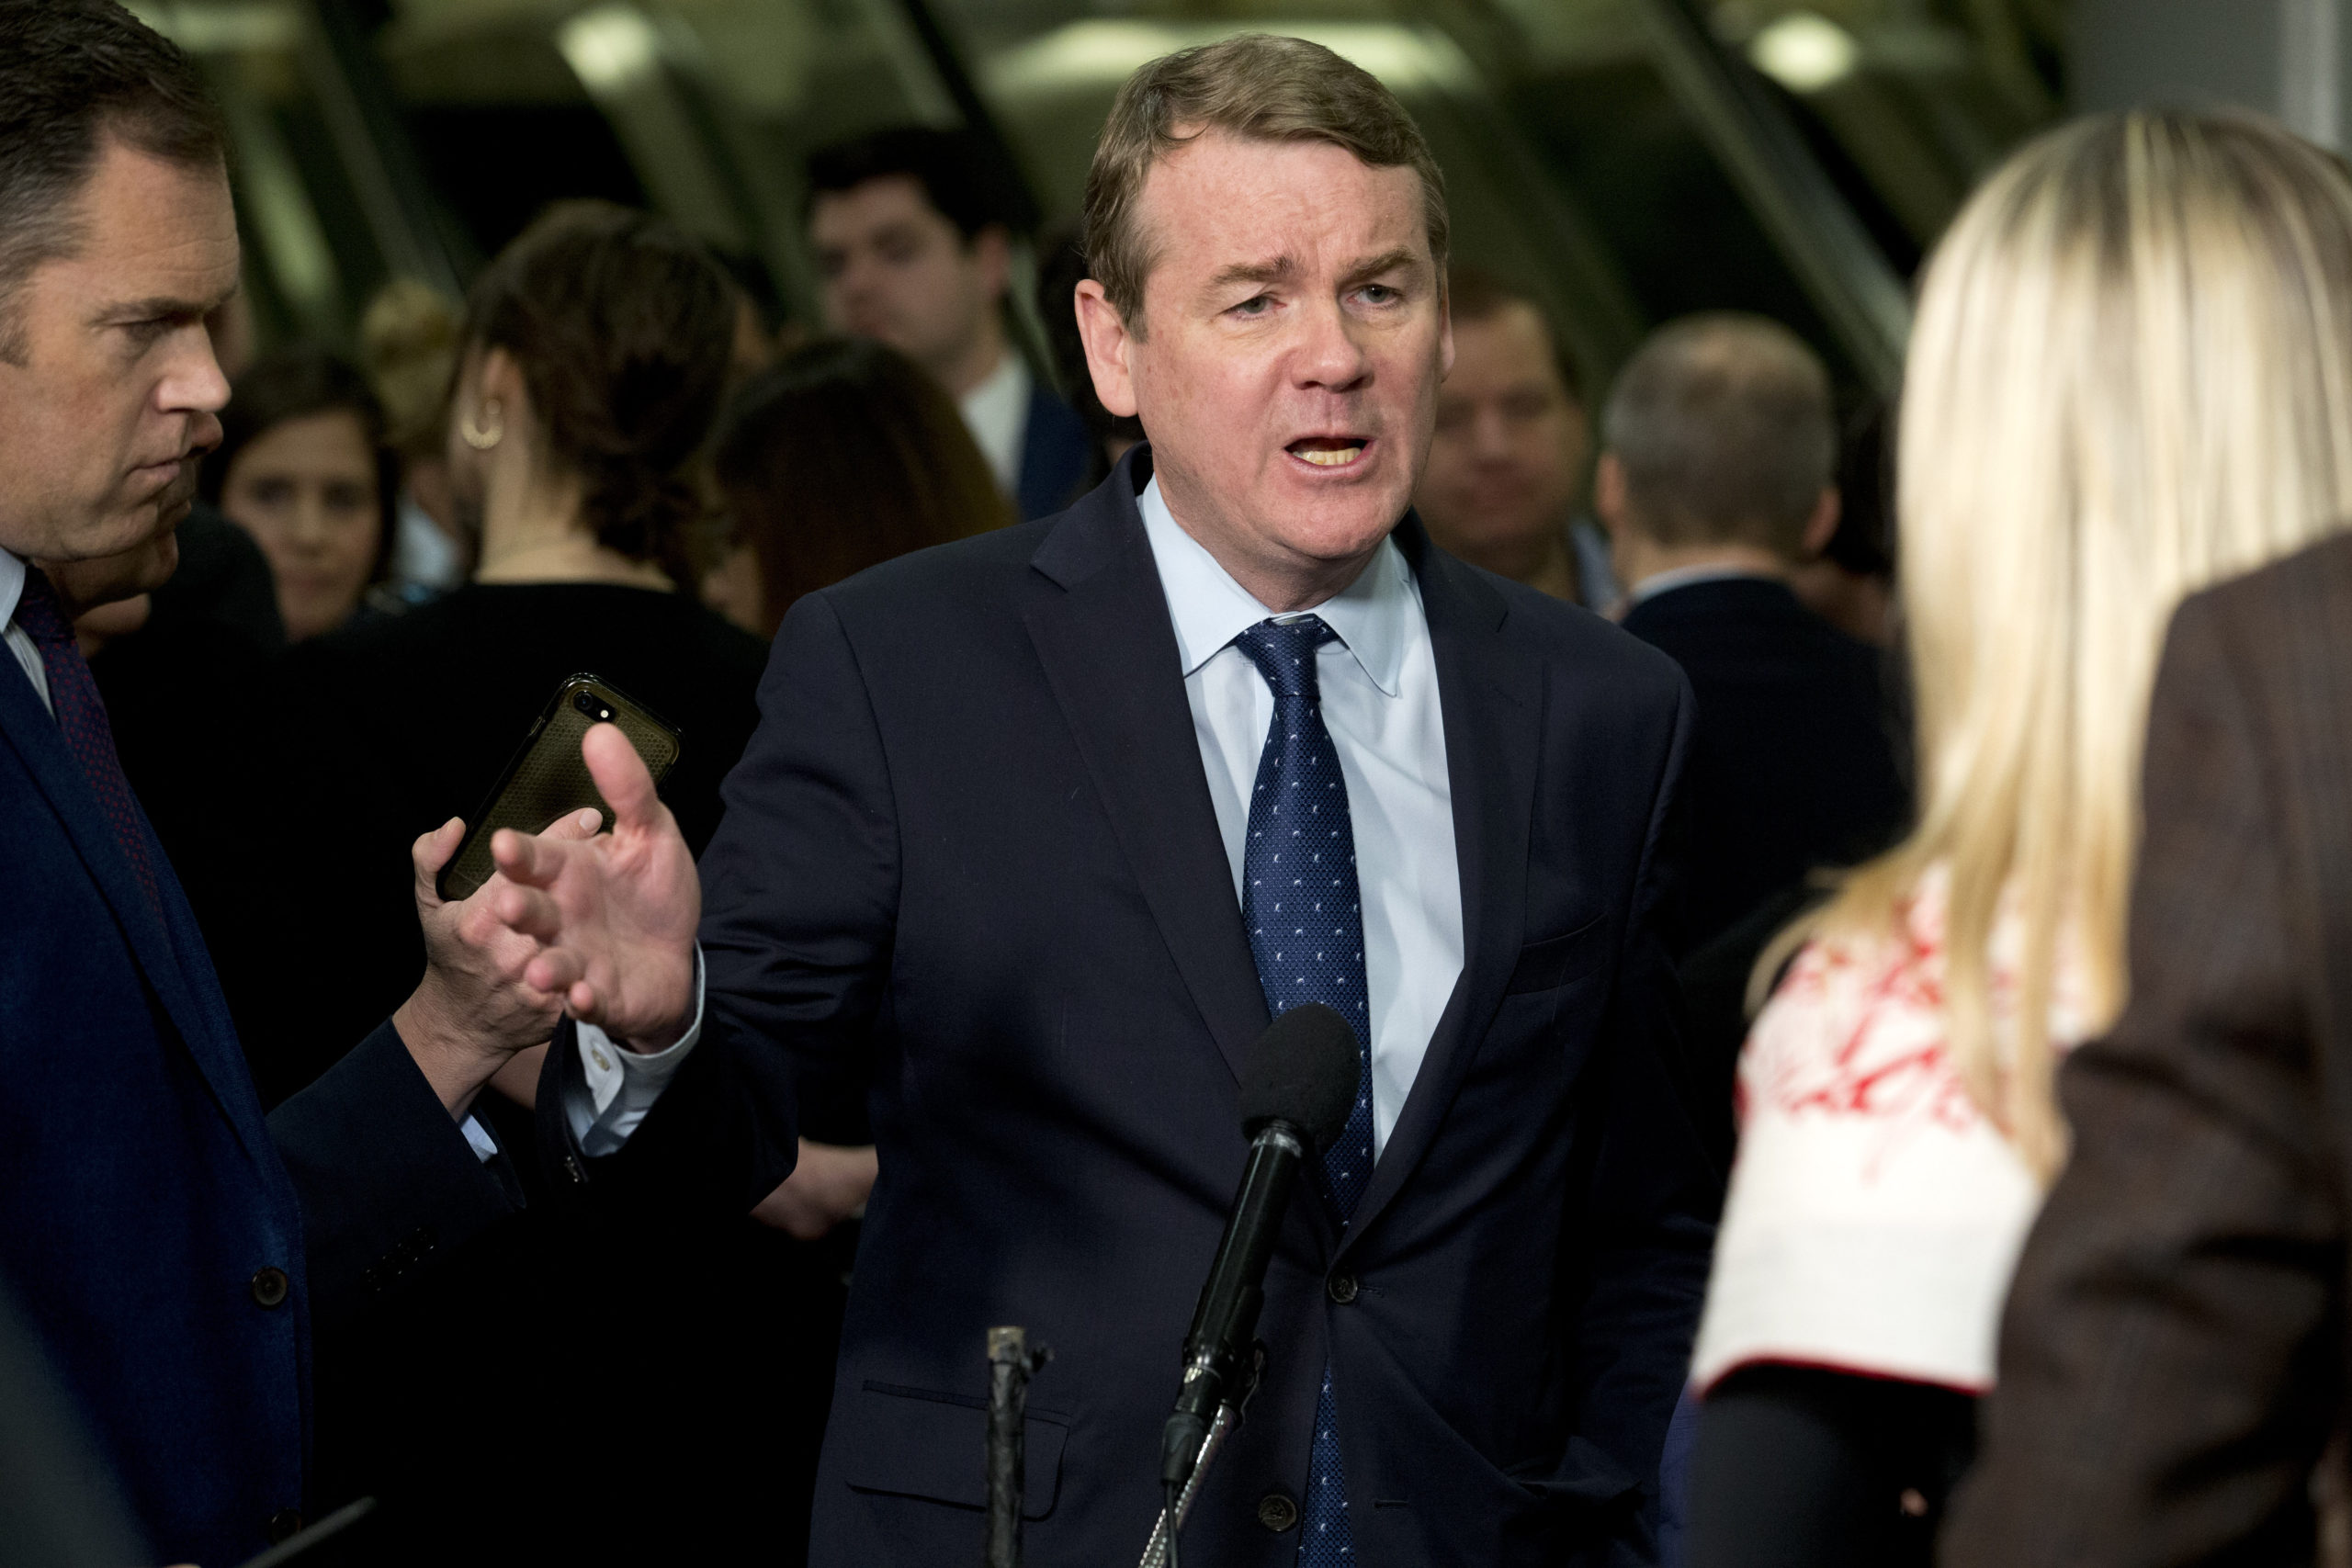 Sen. Michael Bennet, D-Colo., speaks to the media on Capitol Hill in Washington, Thursday, Jan. 23, 2020.